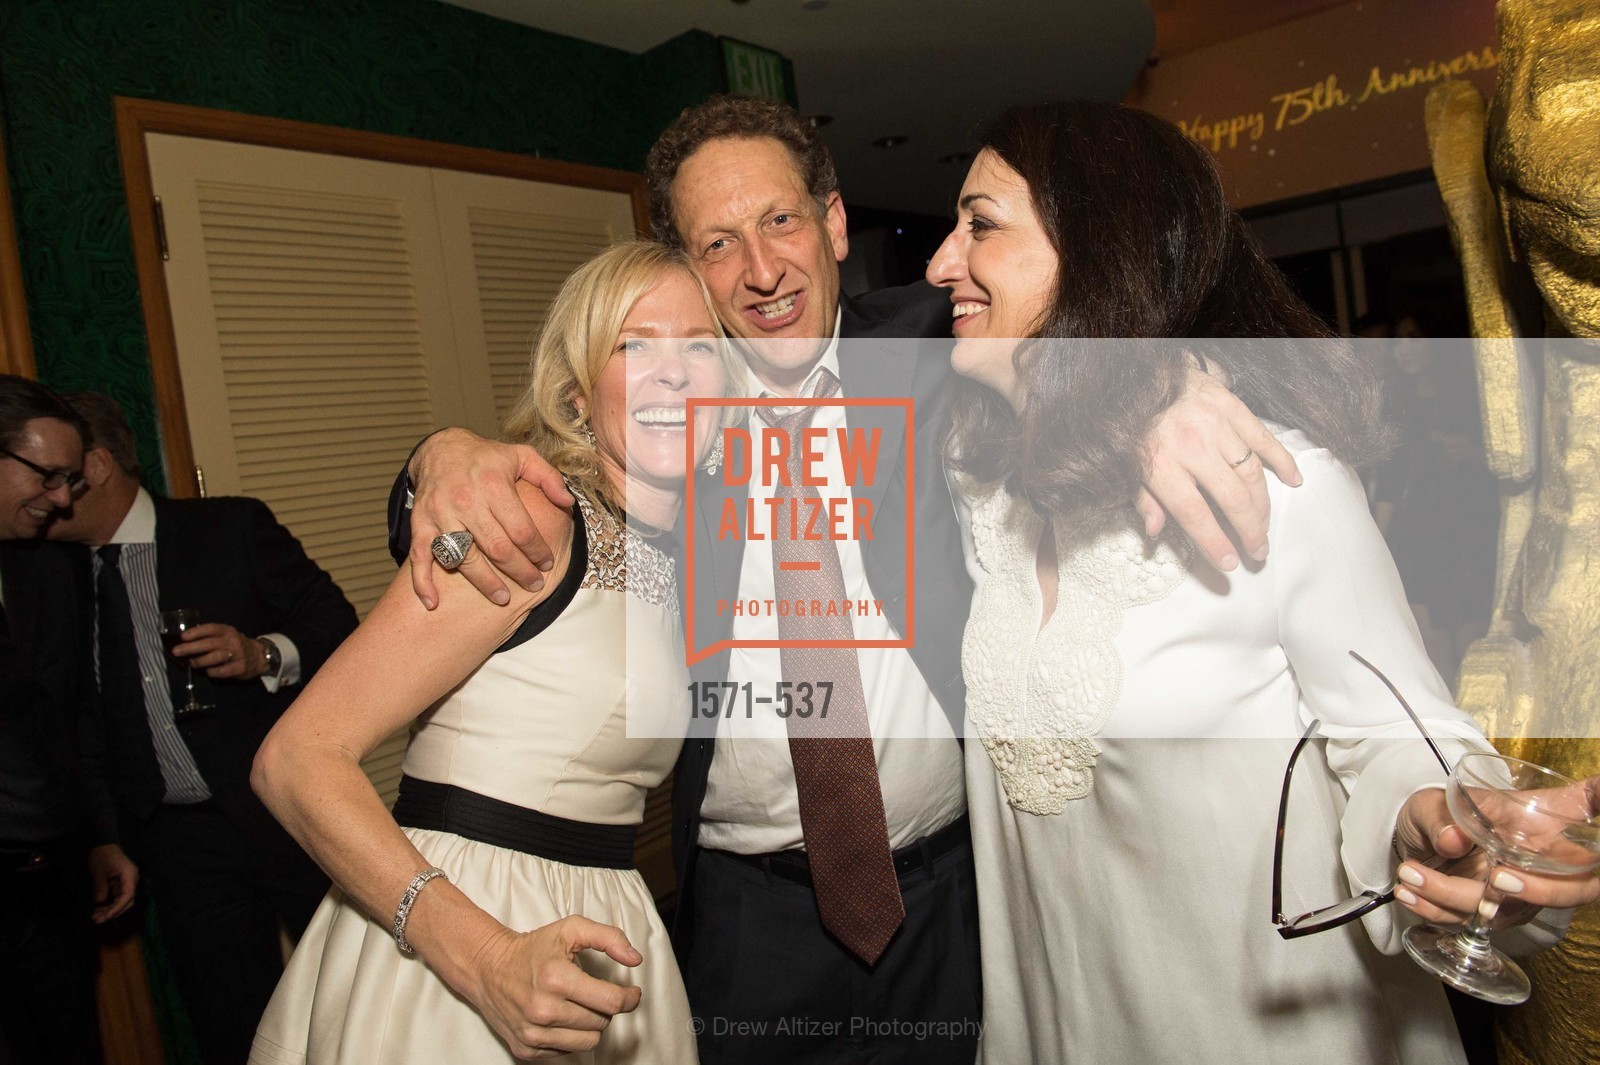 Kerri Lehmann, Larry Baer, Pam Baer, TOP OF THE MARK'S 75TH Anniversary Party, US, November 6th, 2014,Drew Altizer, Drew Altizer Photography, full-service agency, private events, San Francisco photographer, photographer california